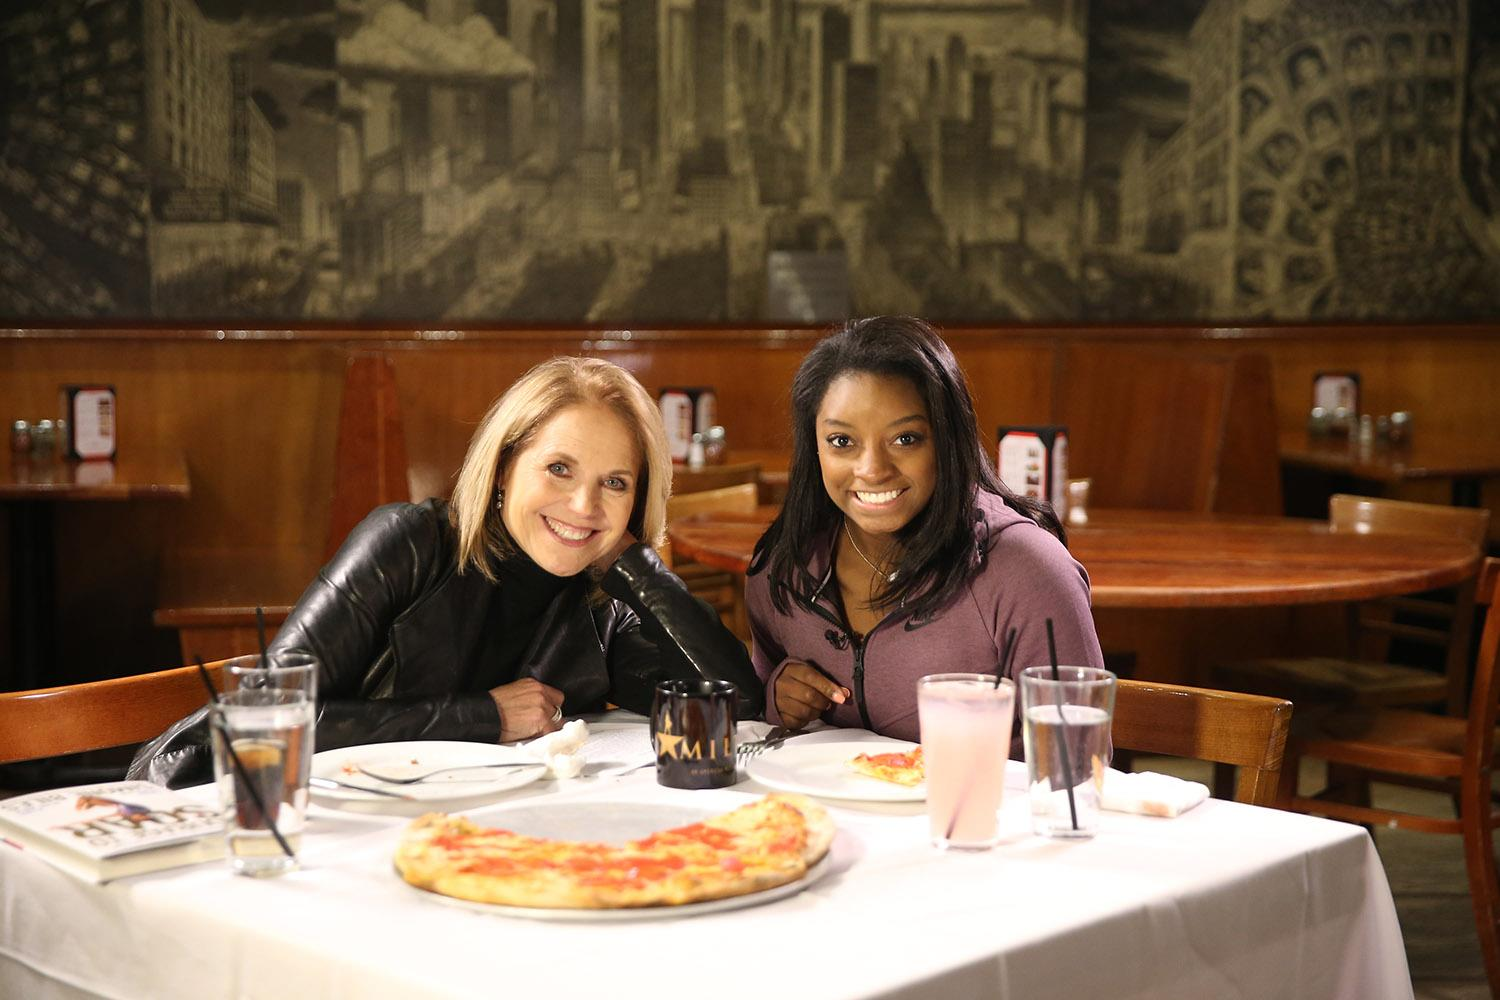 Katie Couric interviews Olympic gold medalist Simone Biles